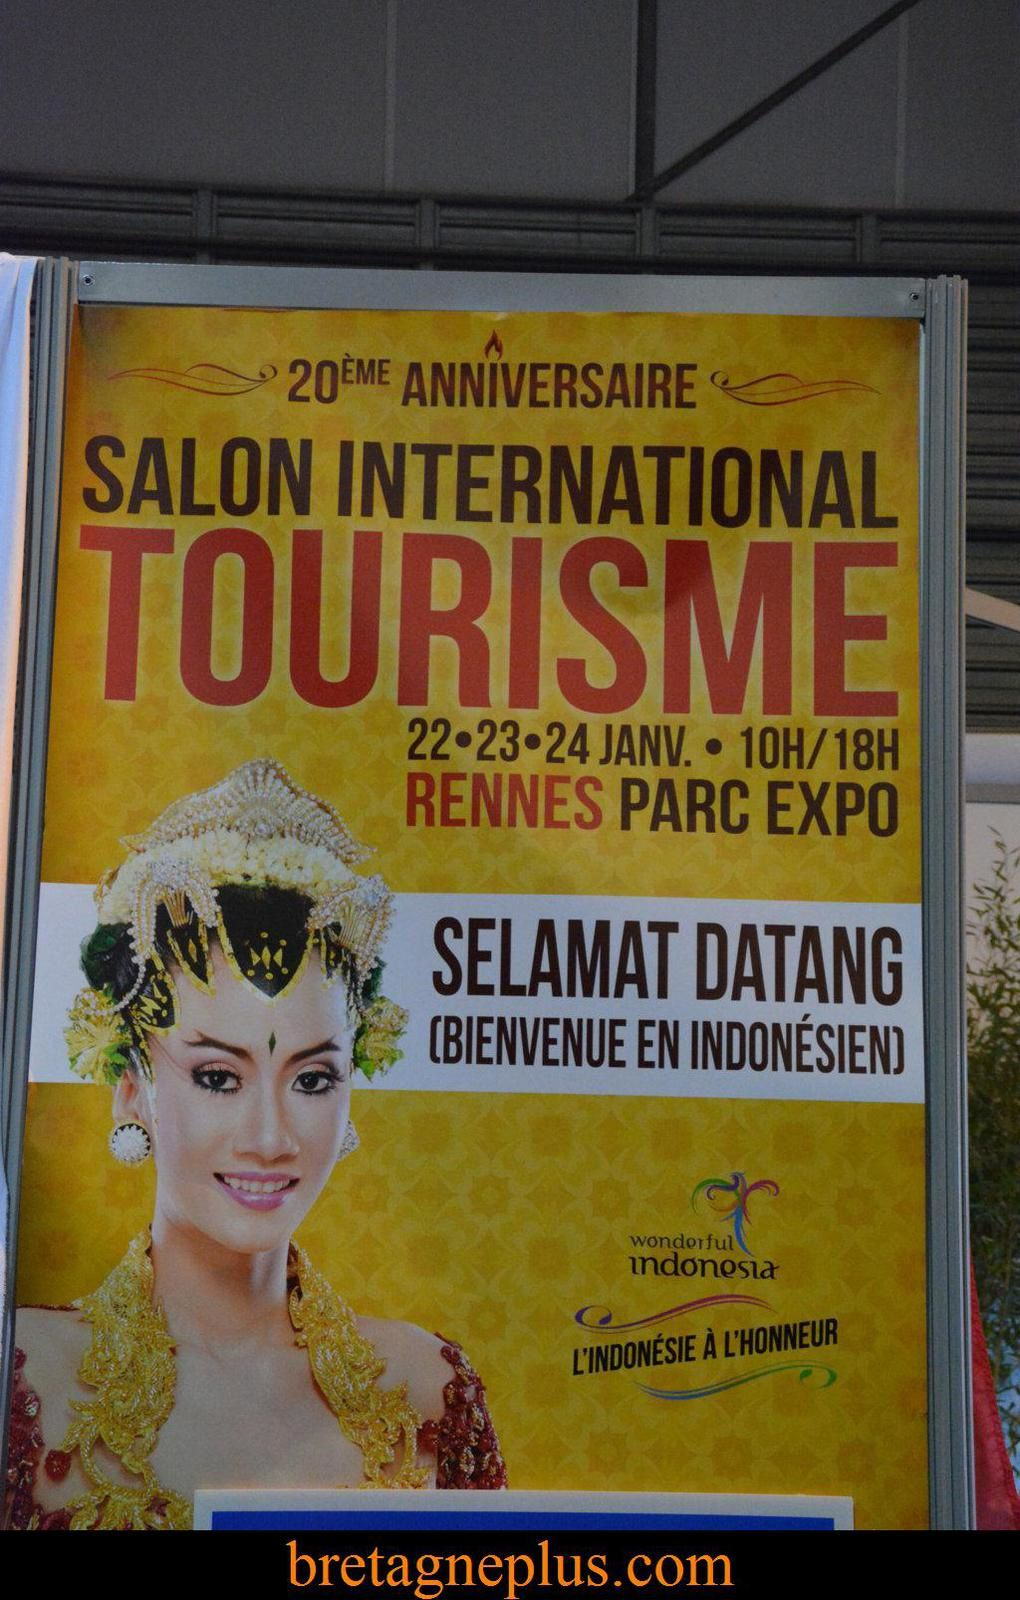 Salon international du tourisme de rennes 2016 - Salon international du tourisme rennes ...